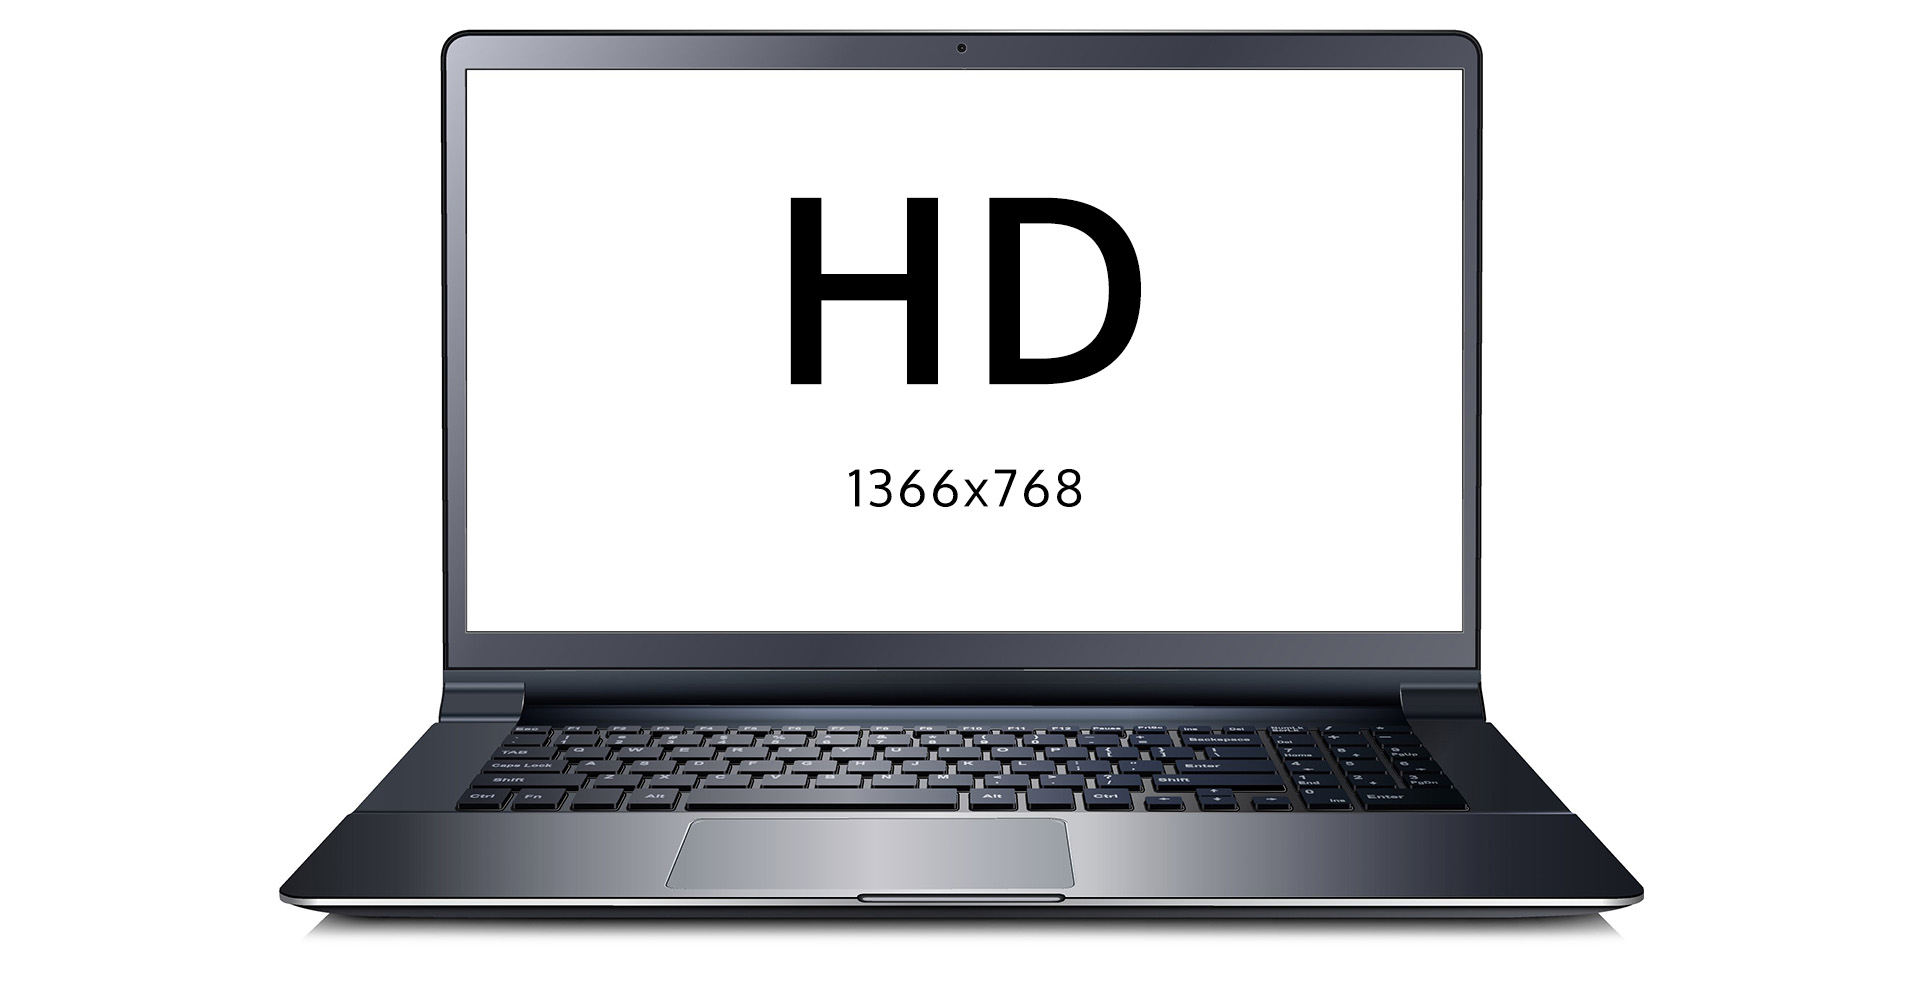 Fujitsu LifeBook A357 (S26391K425V300) 4 GB RAM/ 256 GB SSD/ 1TB HDD/ Windows 10 Pro                             HD 1366x768 resolutsioon